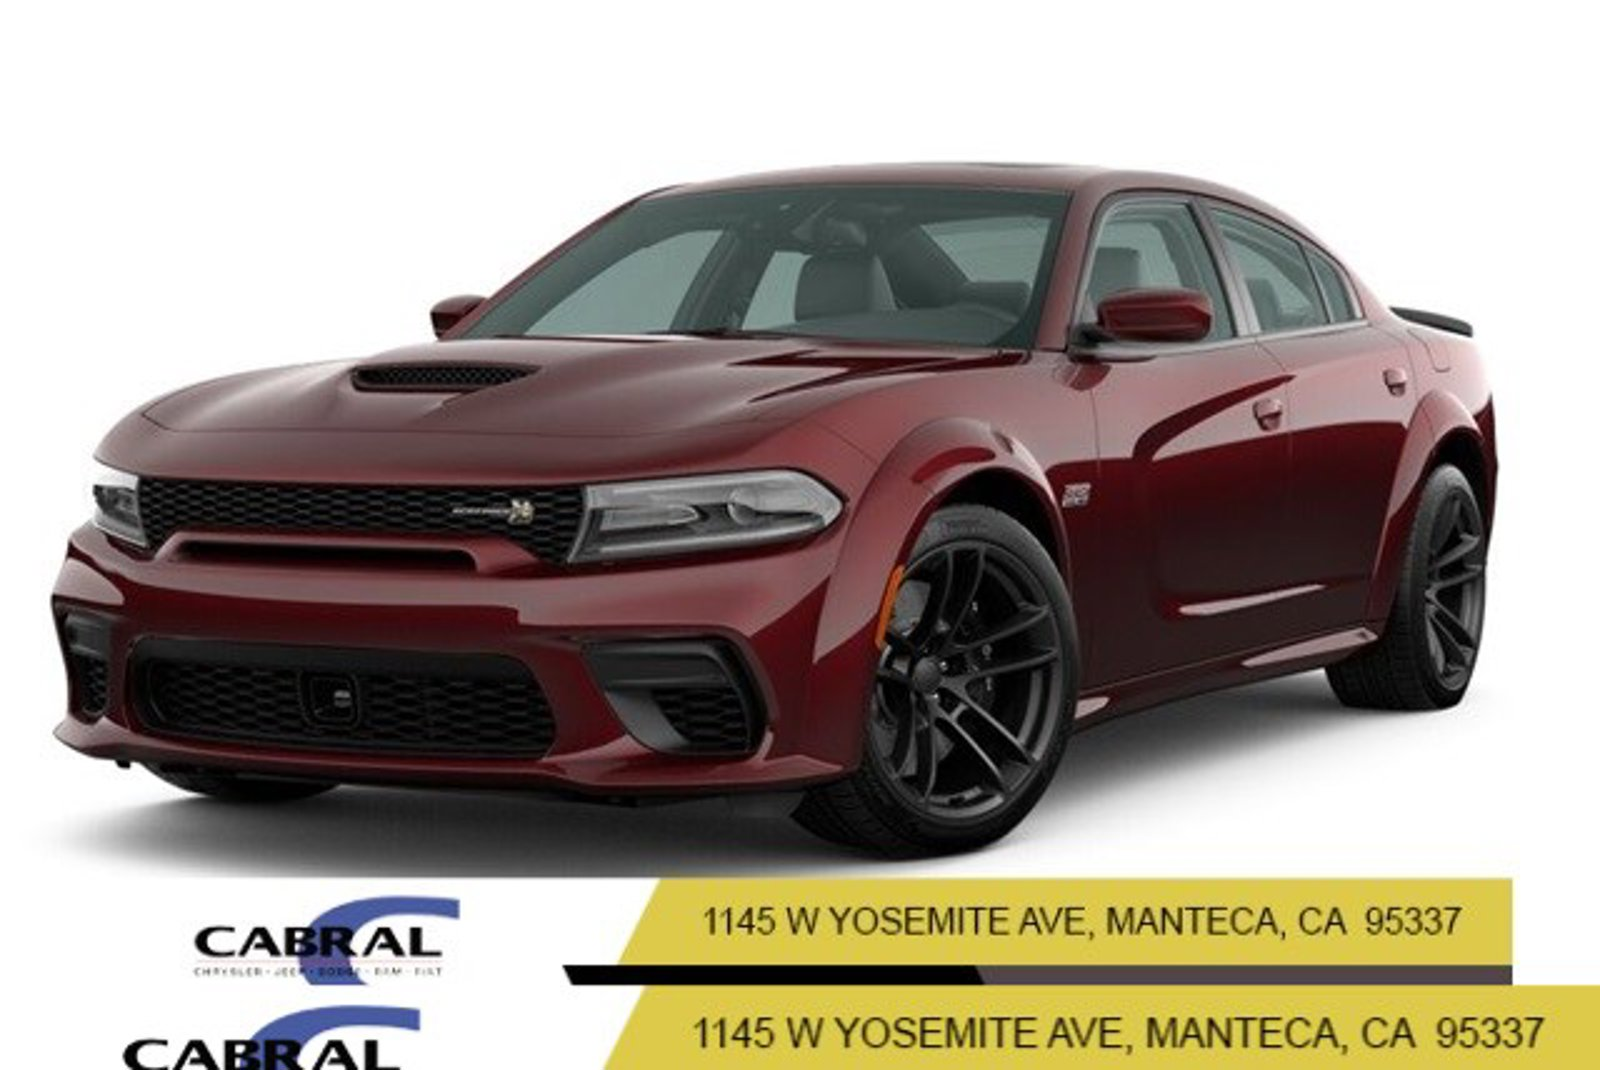 2020 Dodge Charger Scat Pack Widebody Scat Pack Widebody RWD Premium Unleaded V-8 6.4 L/392 [8]